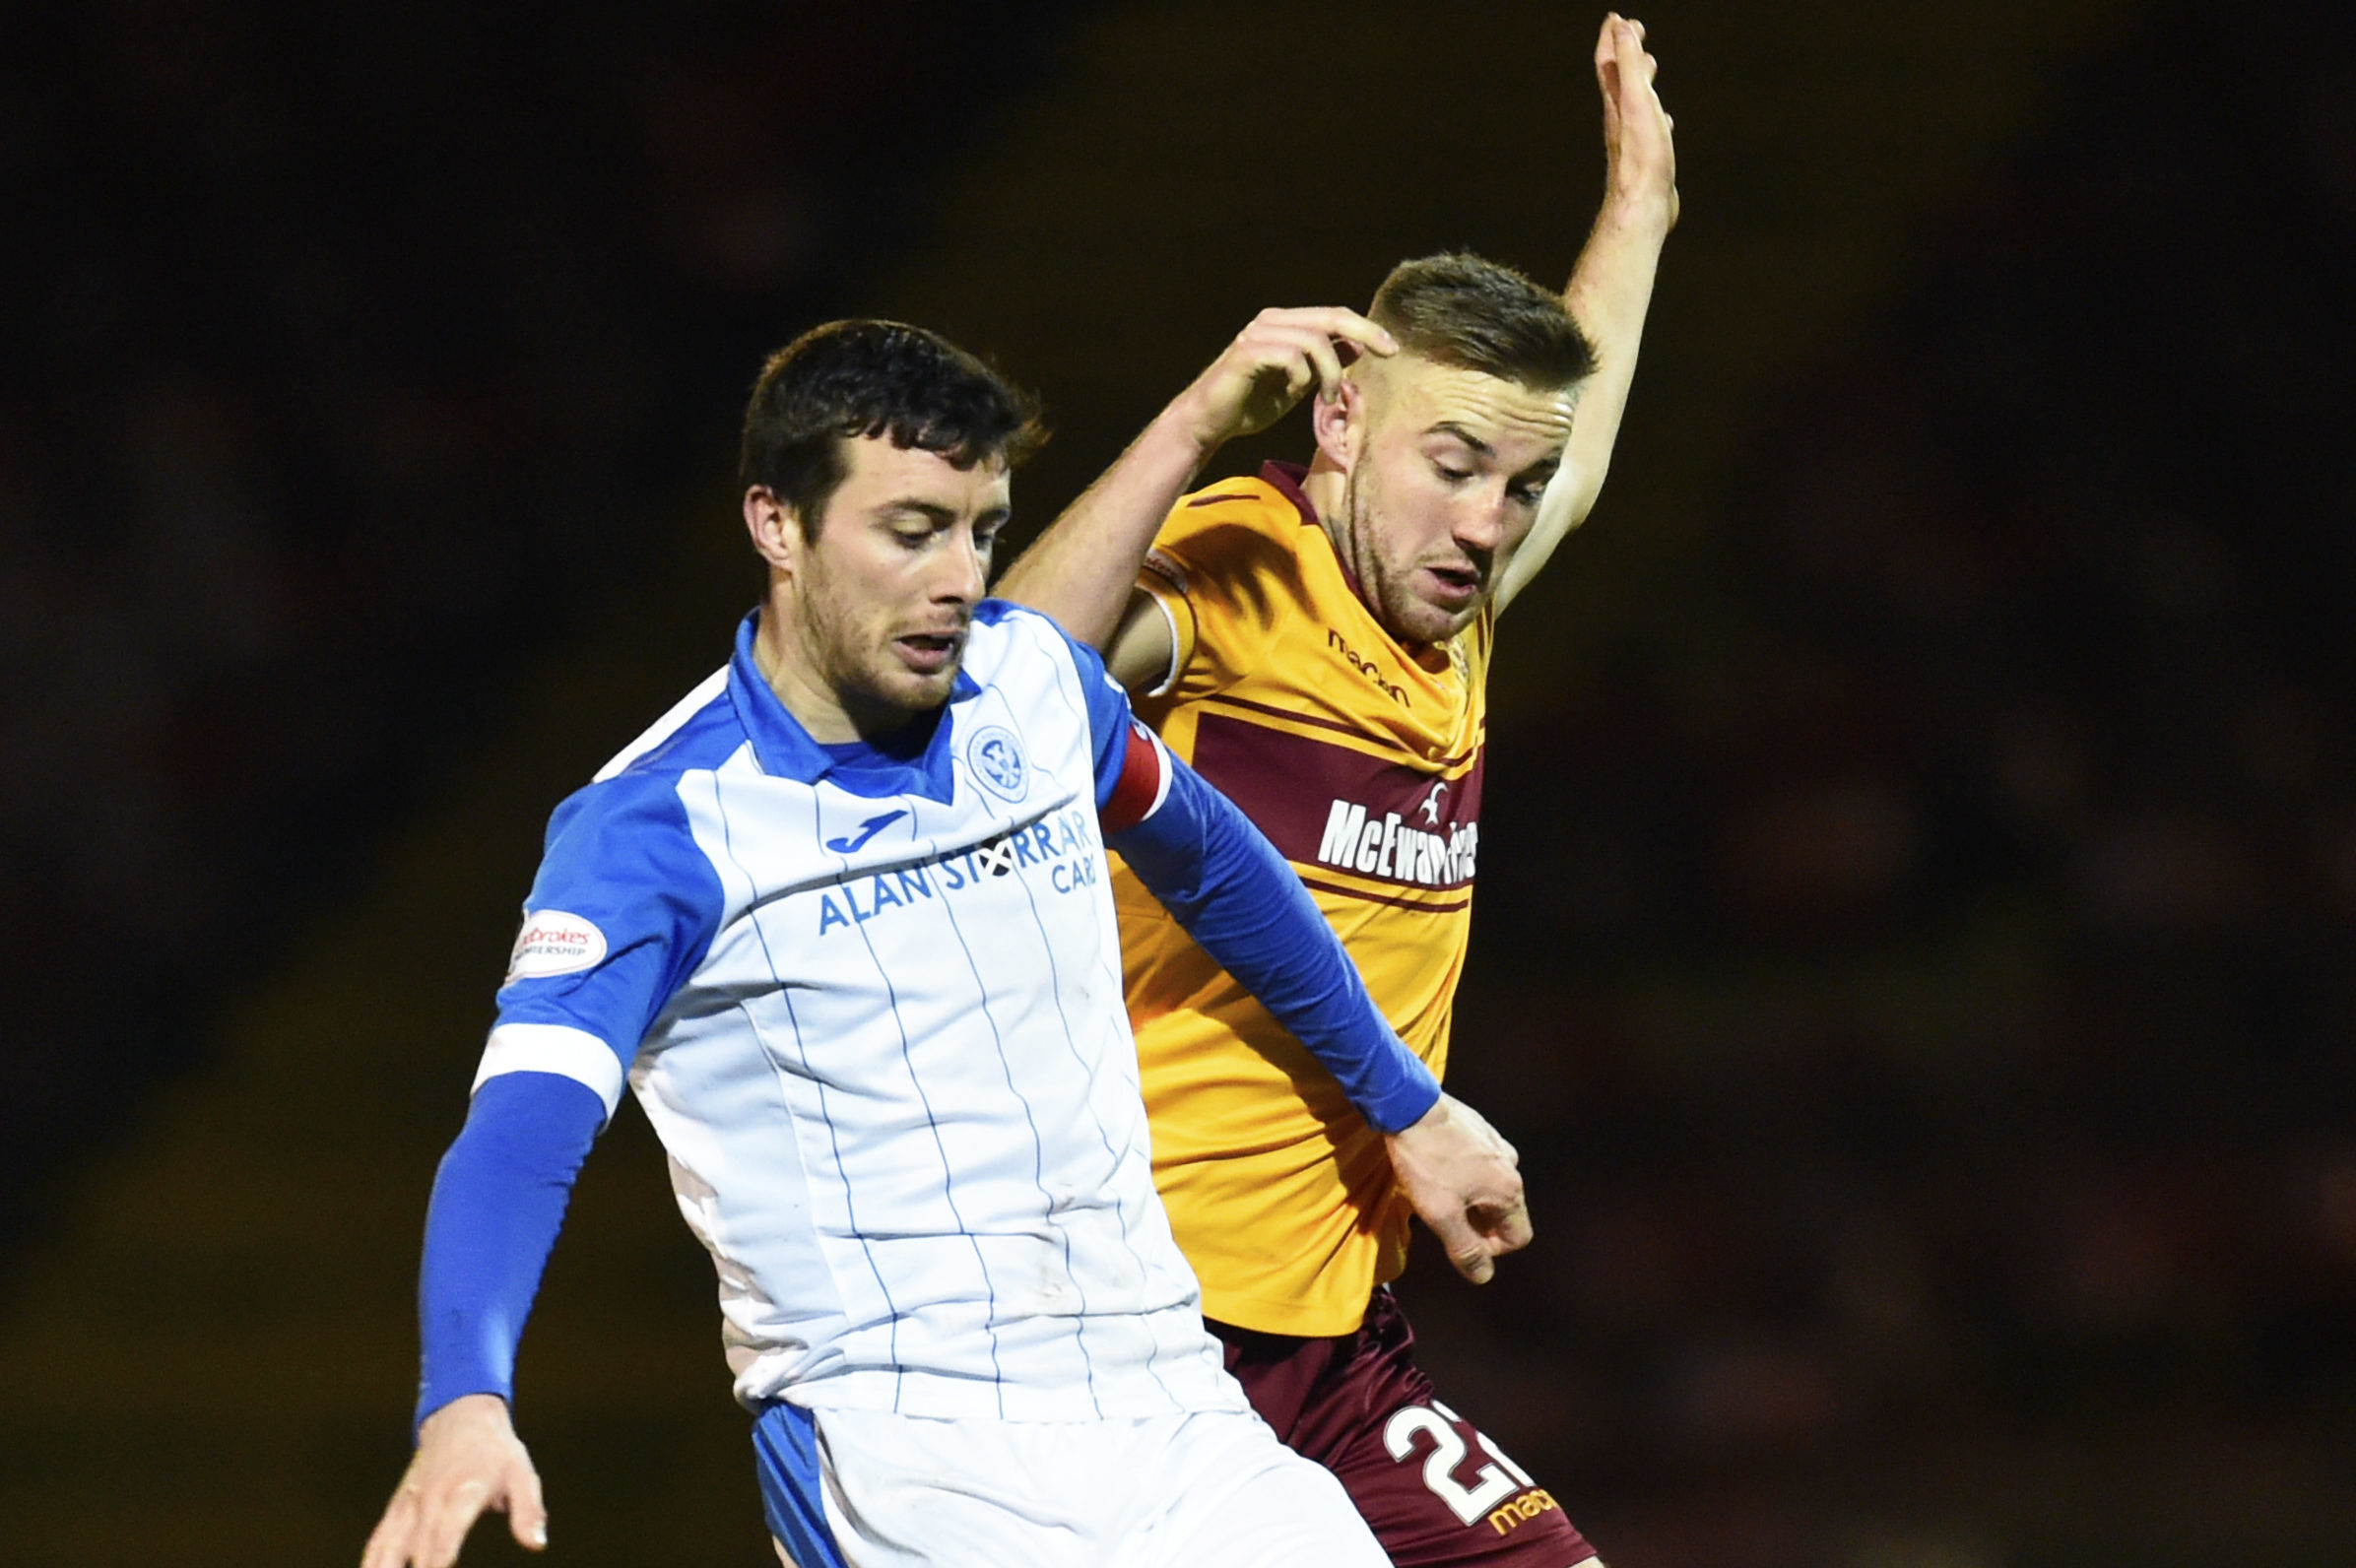 Joe Shaughnessy in action at Motherwell.